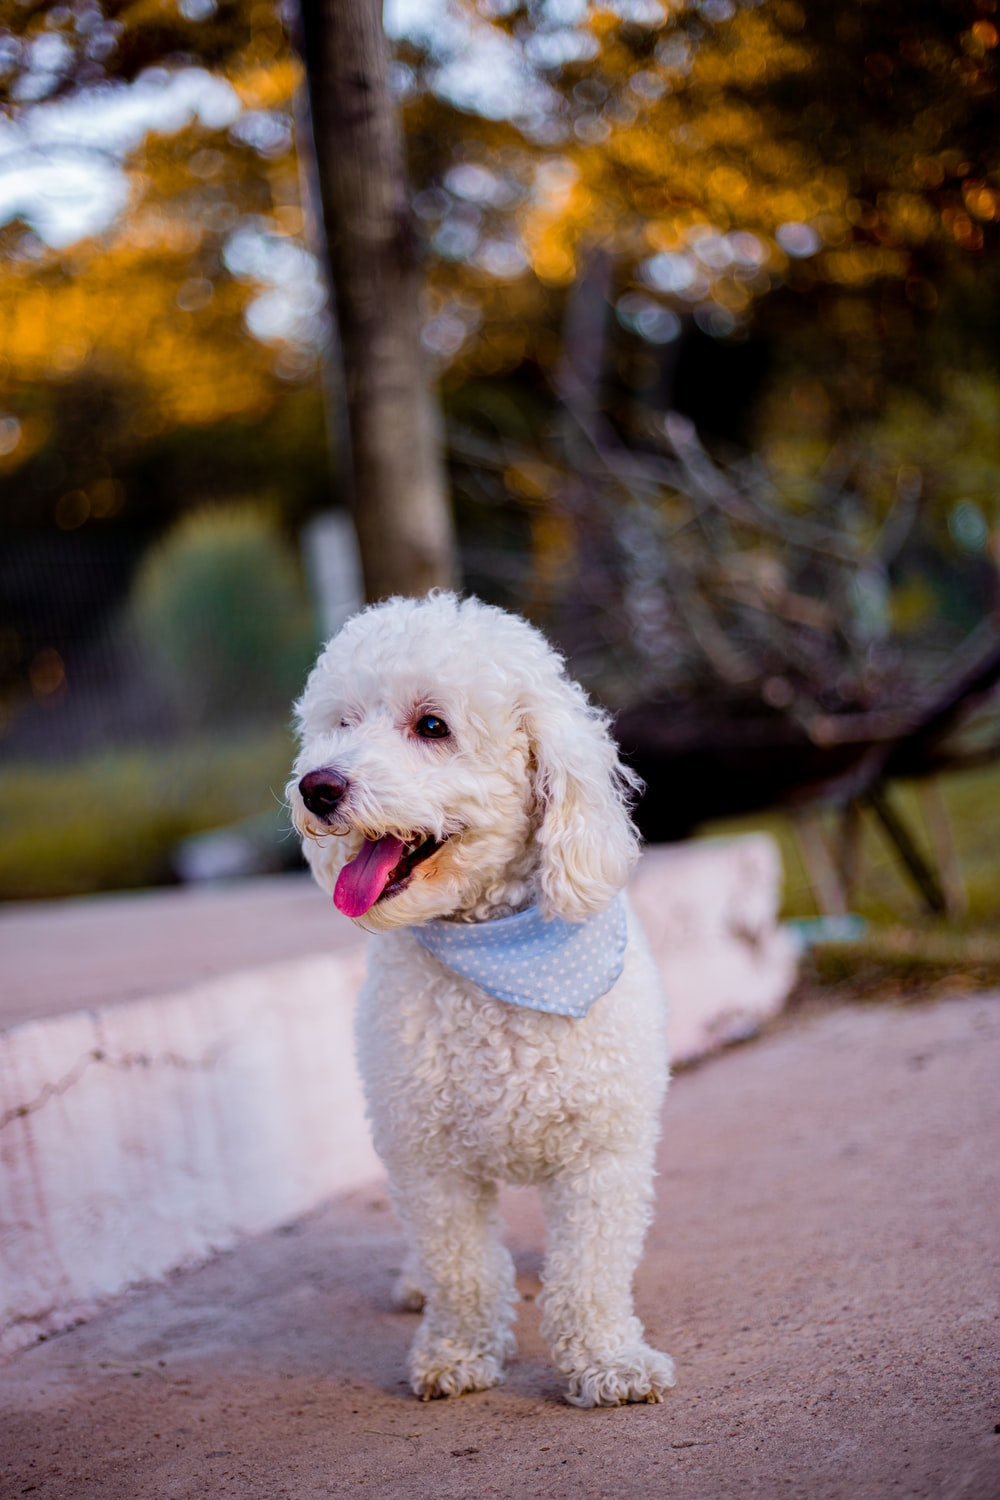 white poodle on brown wooden bench during daytime